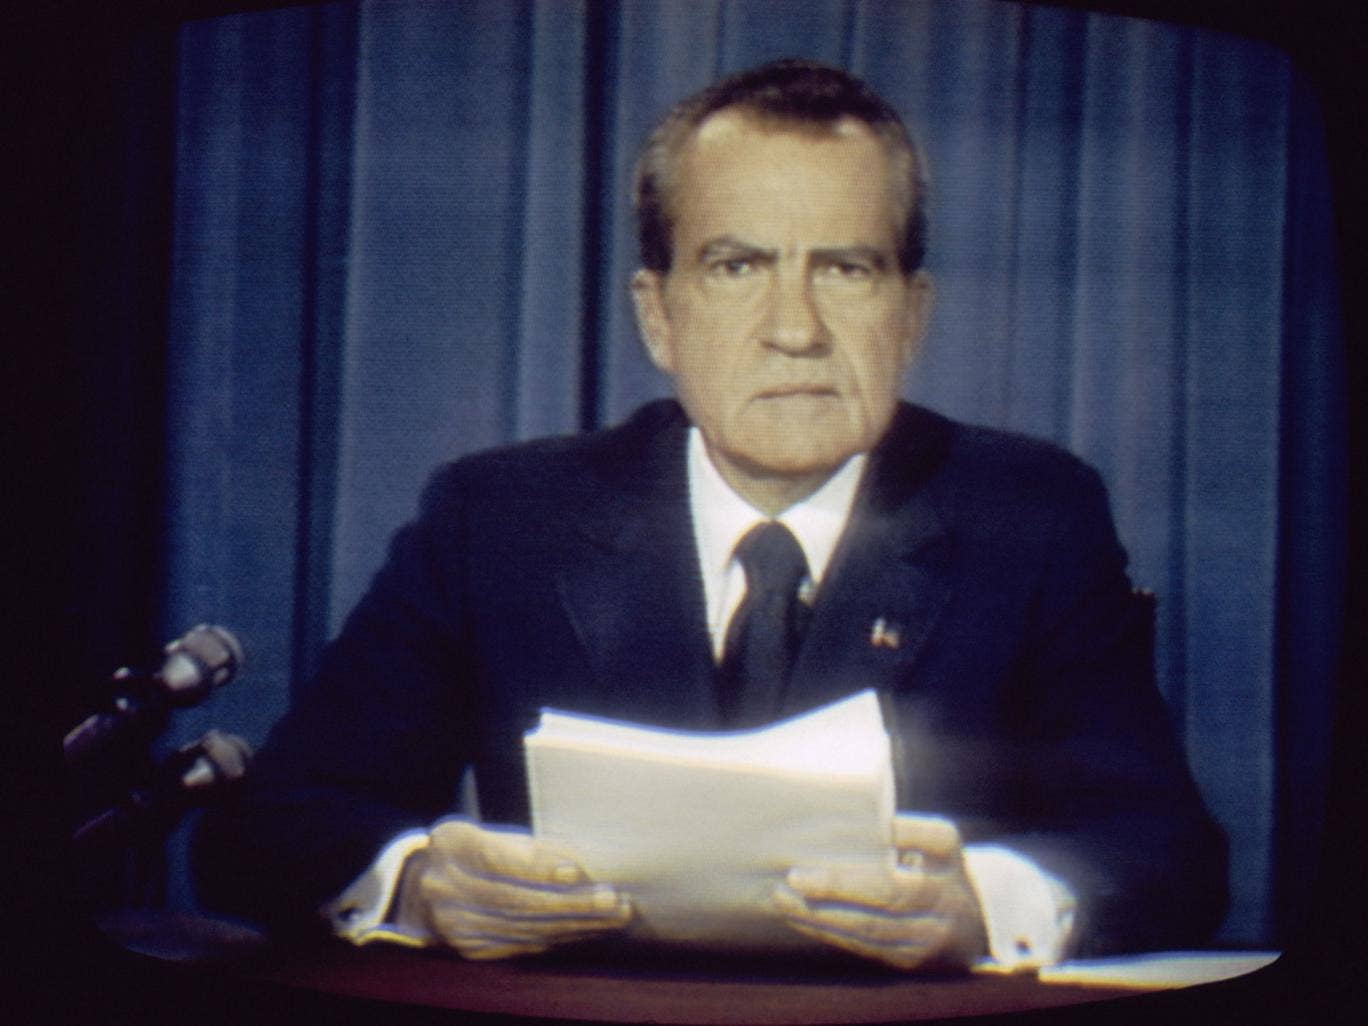 Easy eviction: Richard Nixon's violence-free removal was possible because the alternative left US society essentially unchanged